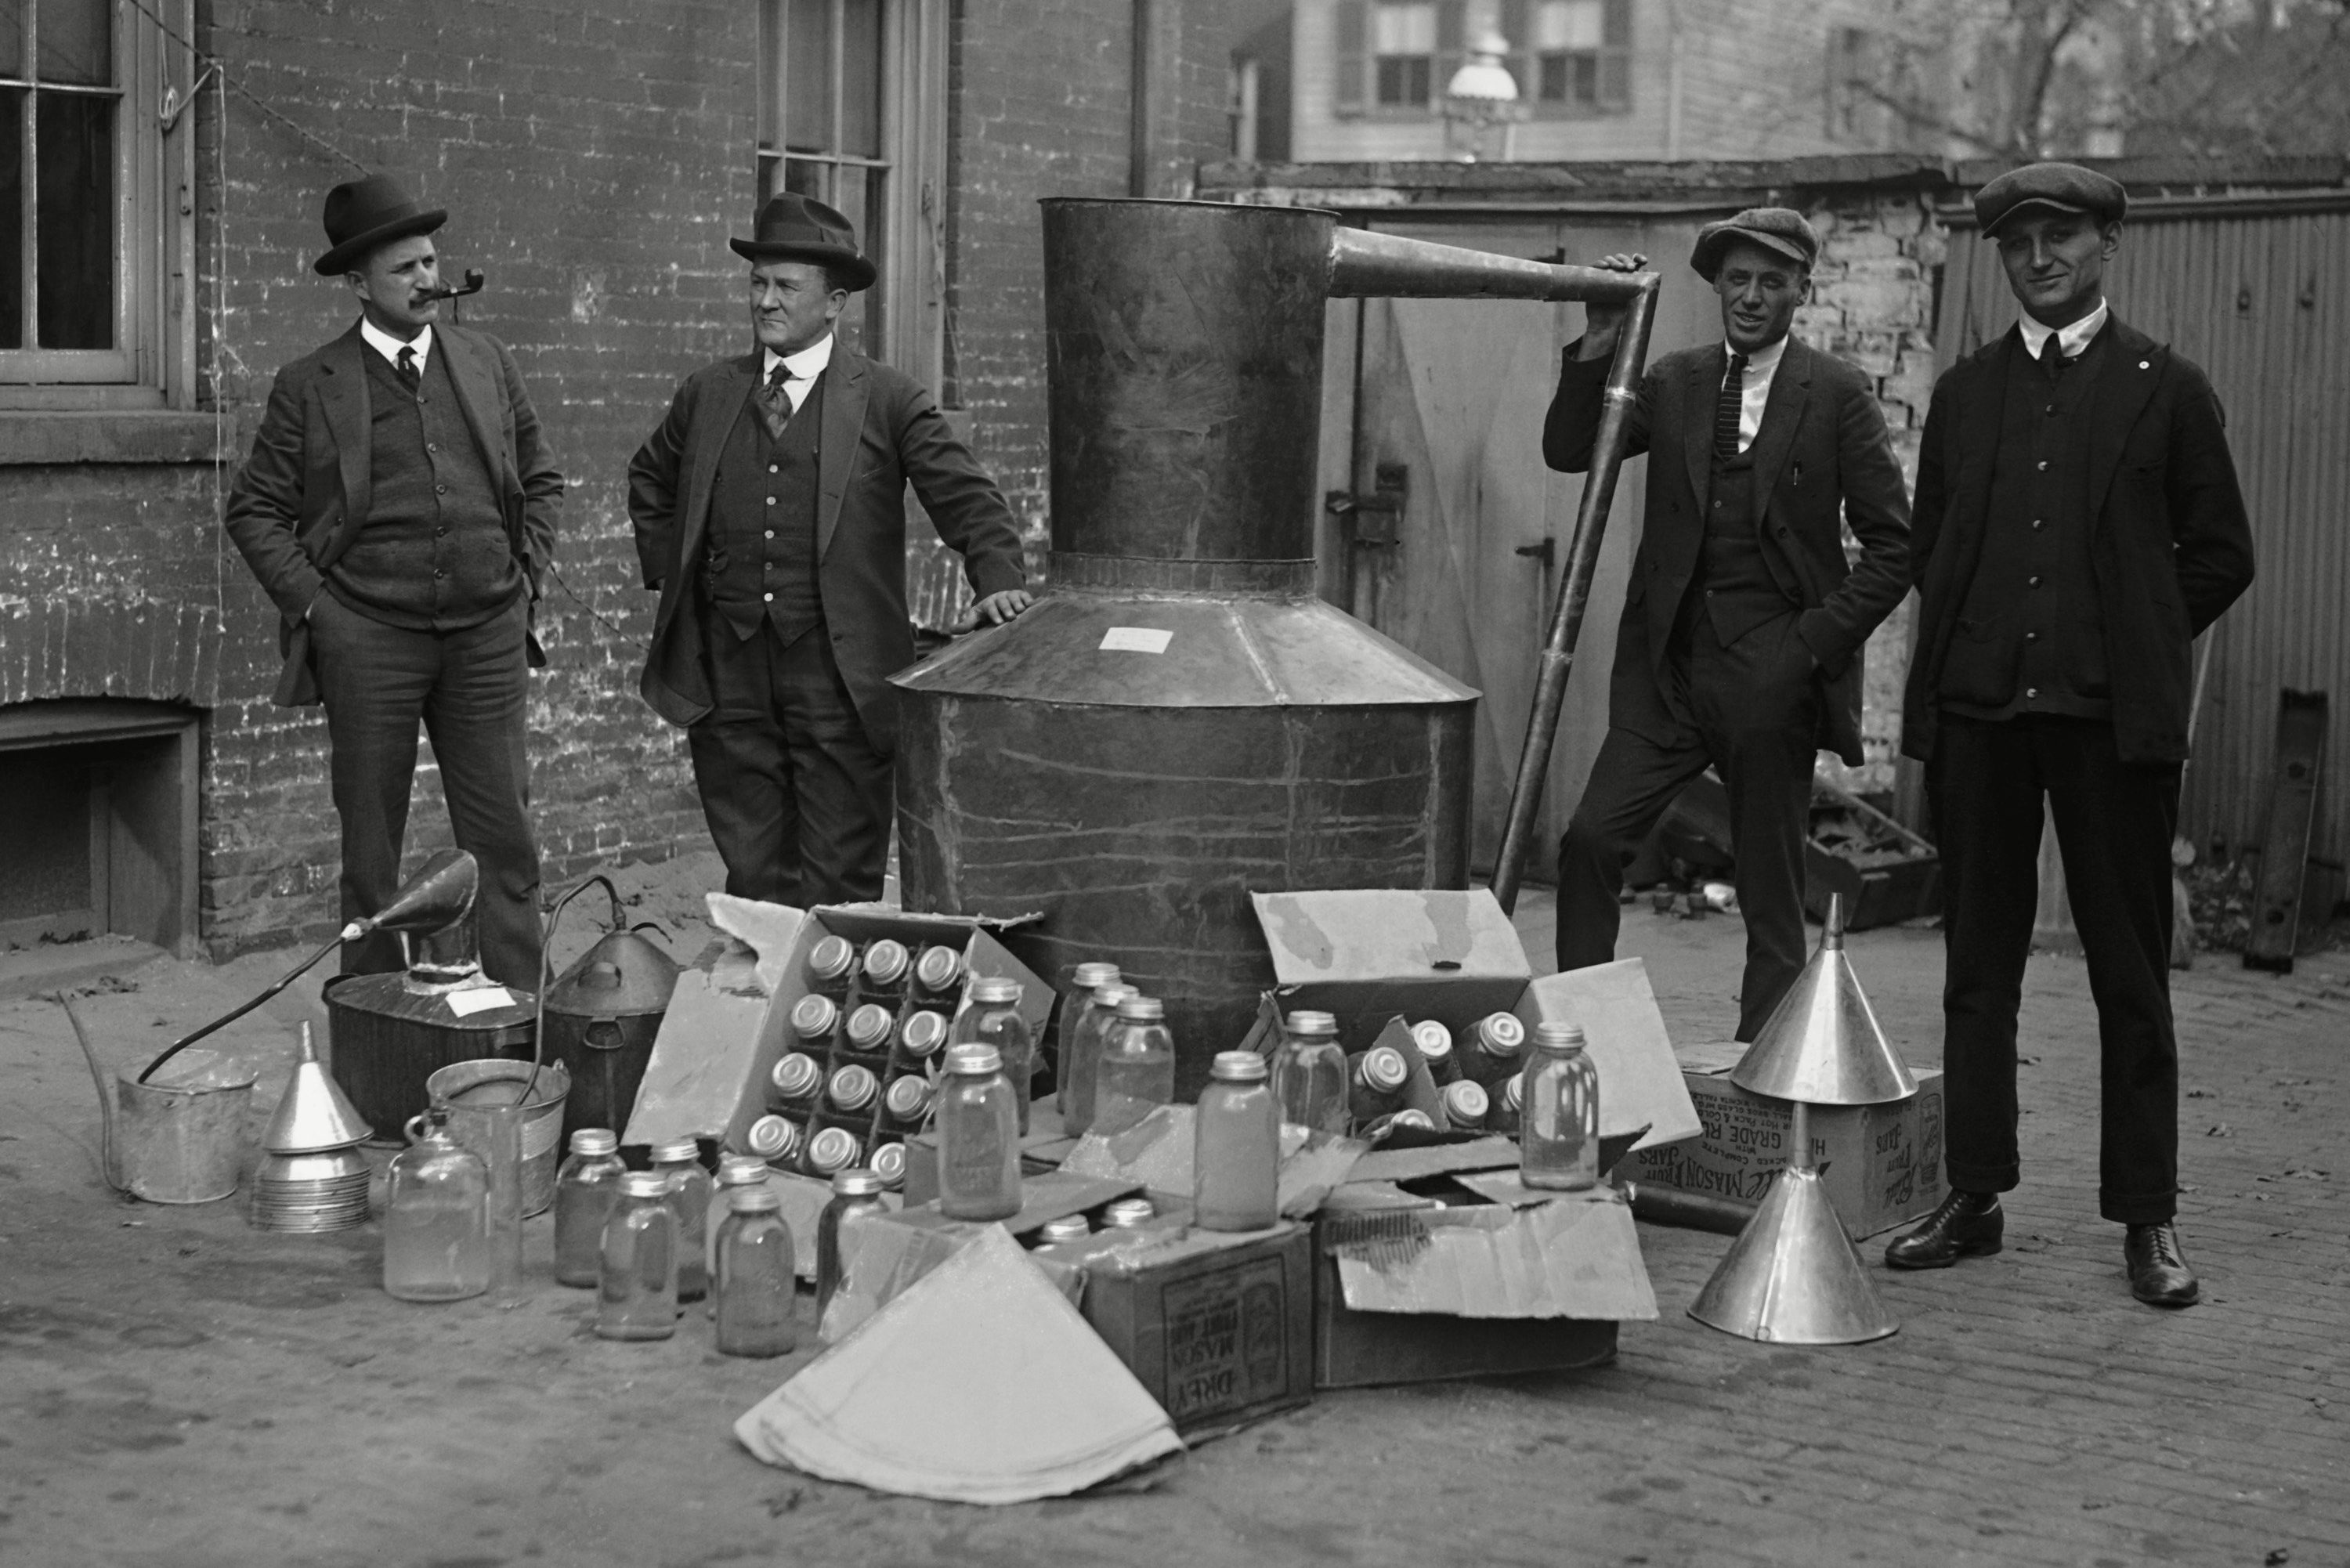 Mandatory Credit: Photo by Everett/Shutterstock (10112290a) Prohibition agents stand with a still and mason jars used to distill hard liquor in Wash. D.C. area. Nov. 11, 1922